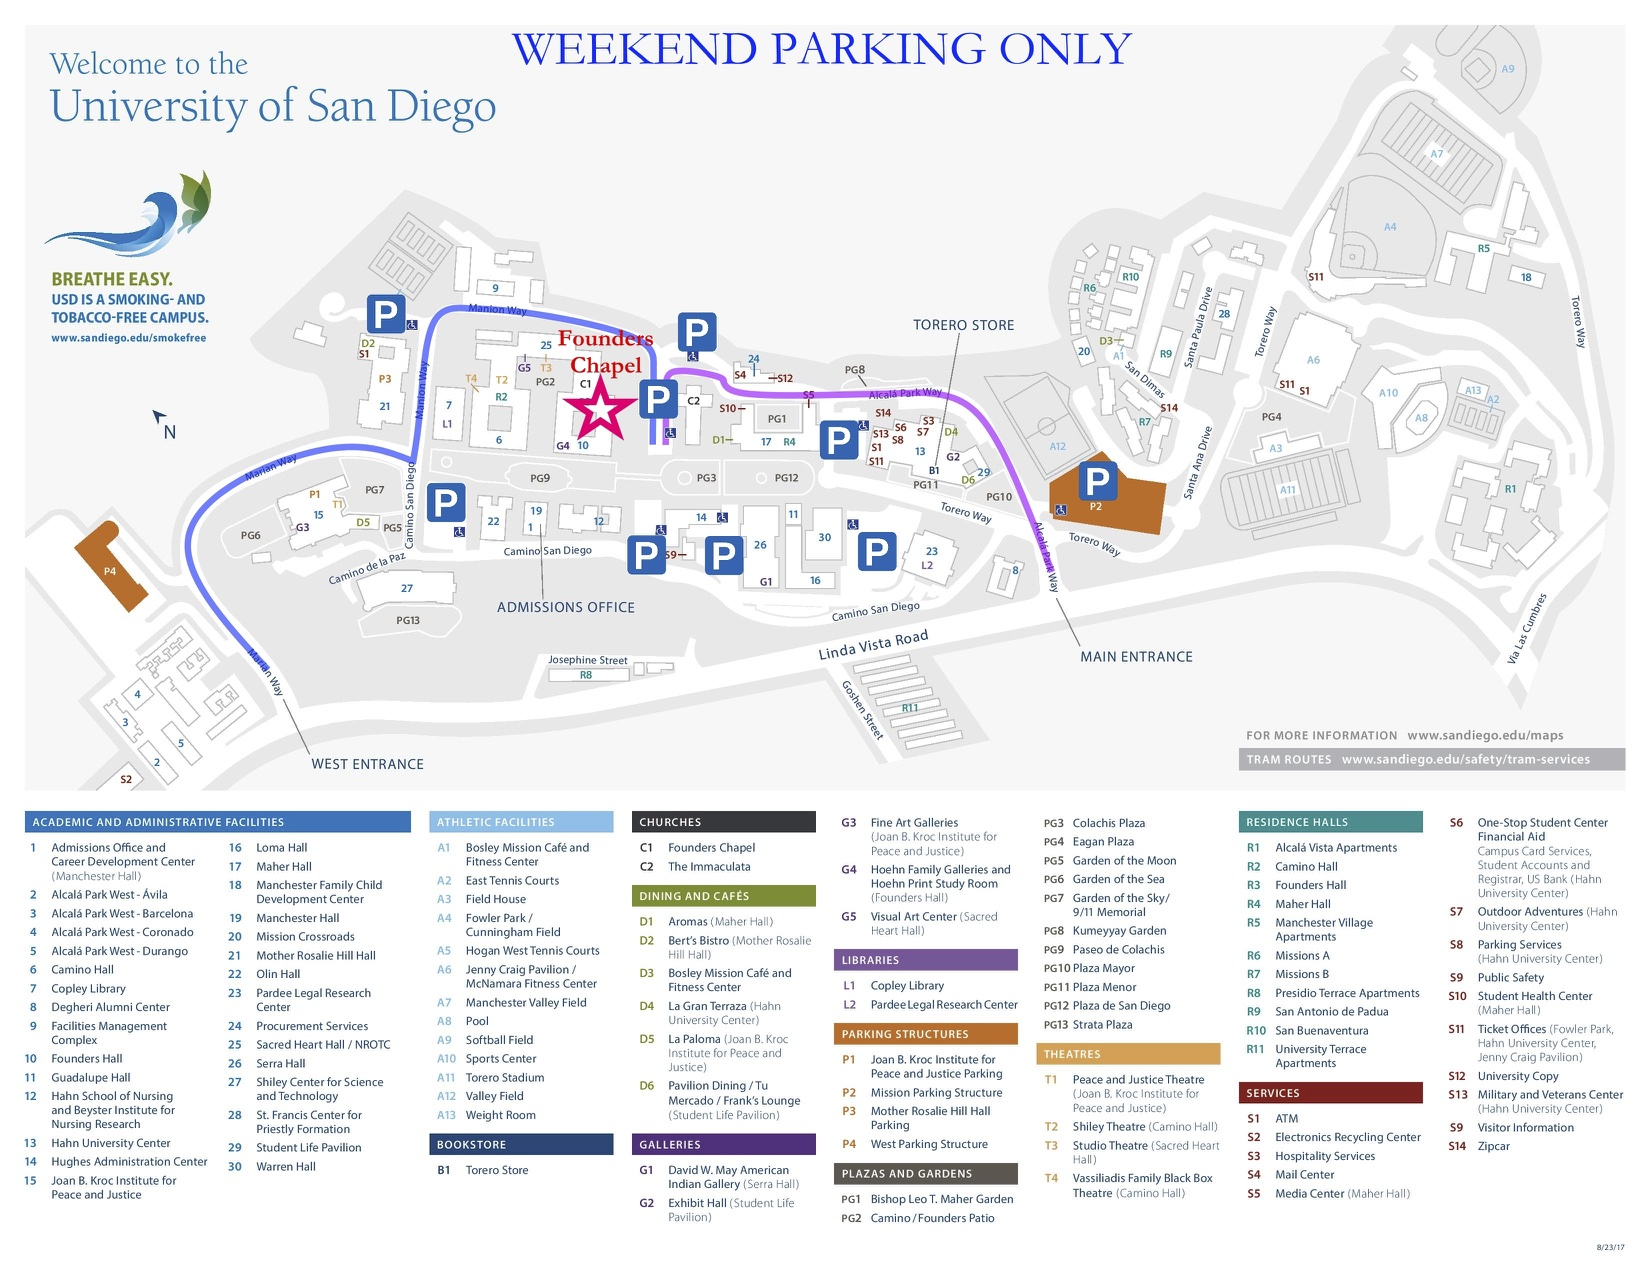 Campus driving directions and parking structures